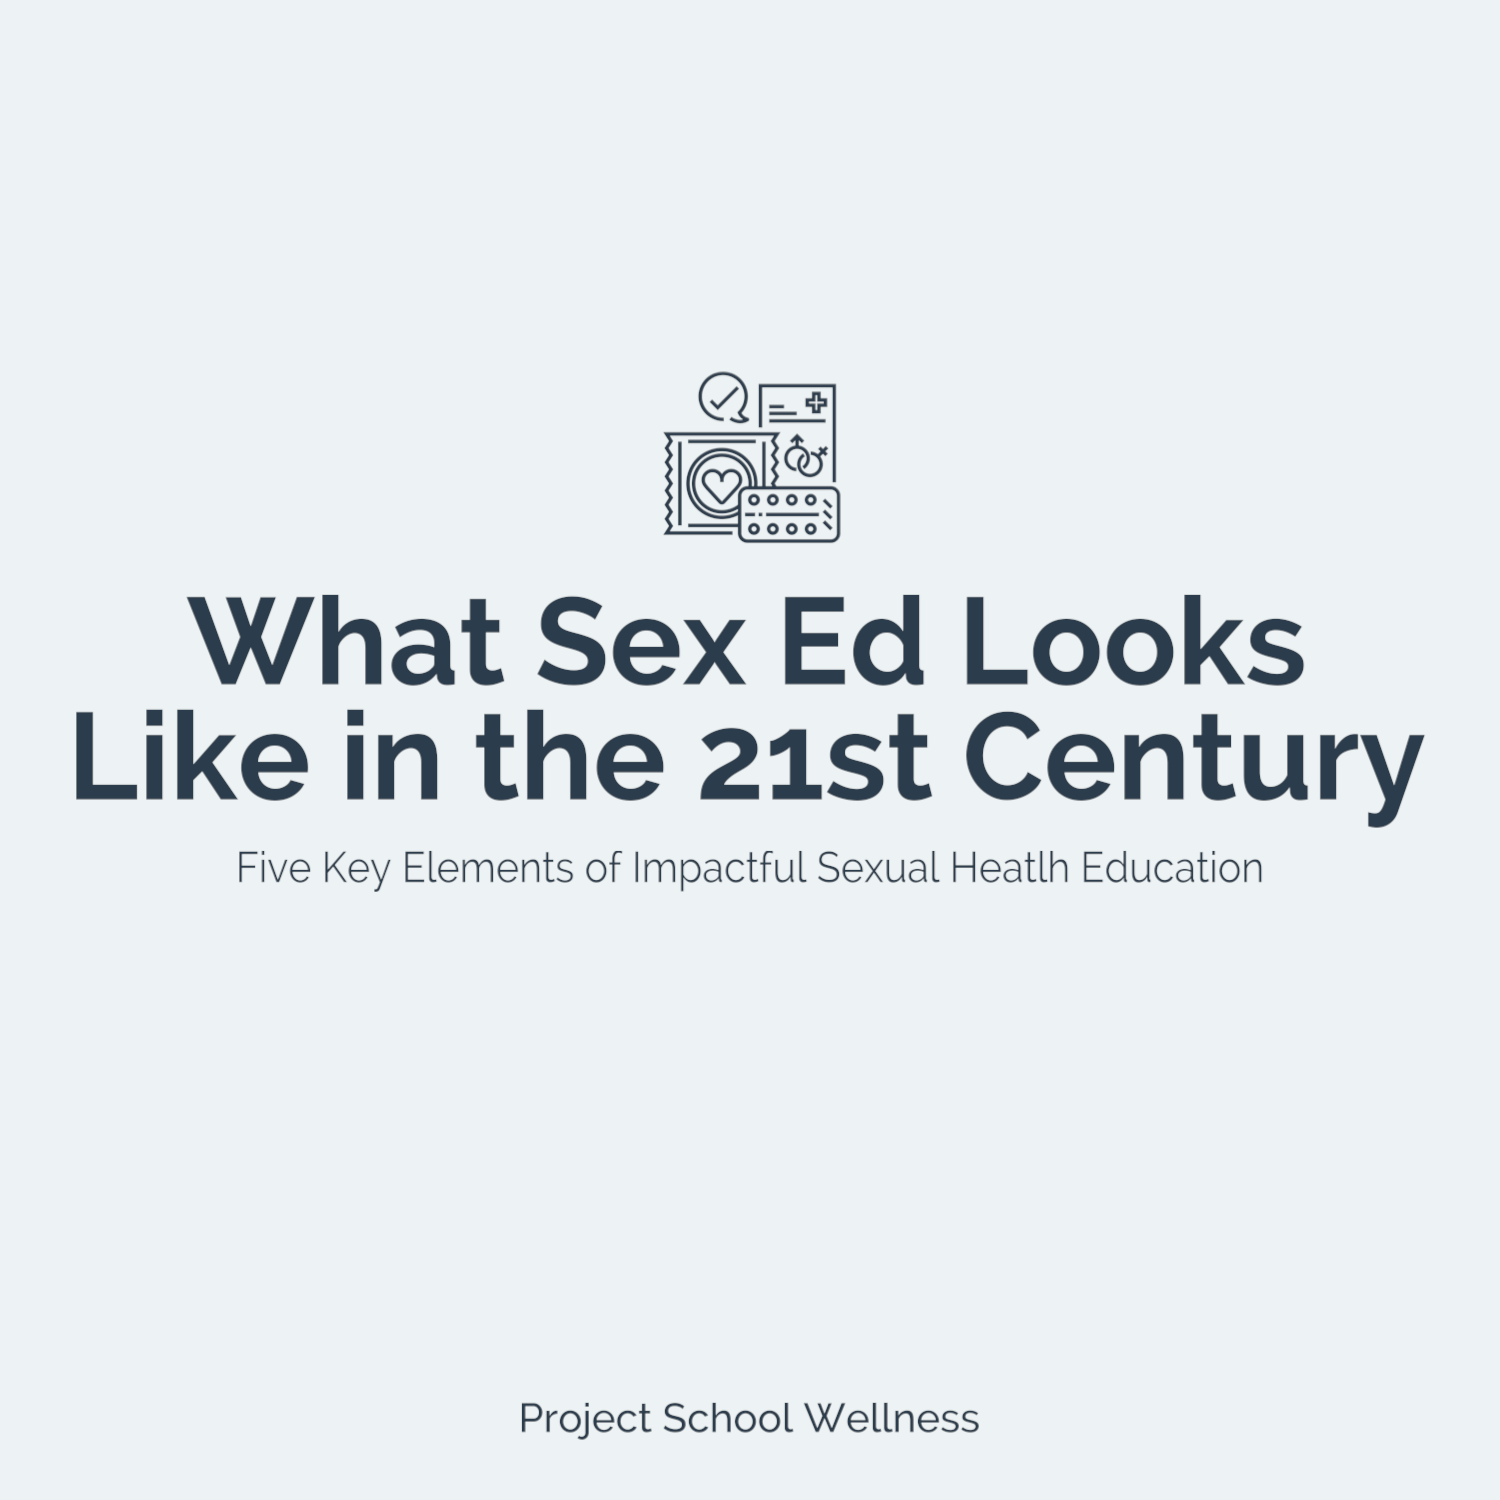 Sexual Health Education in the 21st Century - Five must have characteristics of any comprehensive sex ed program and curriculum